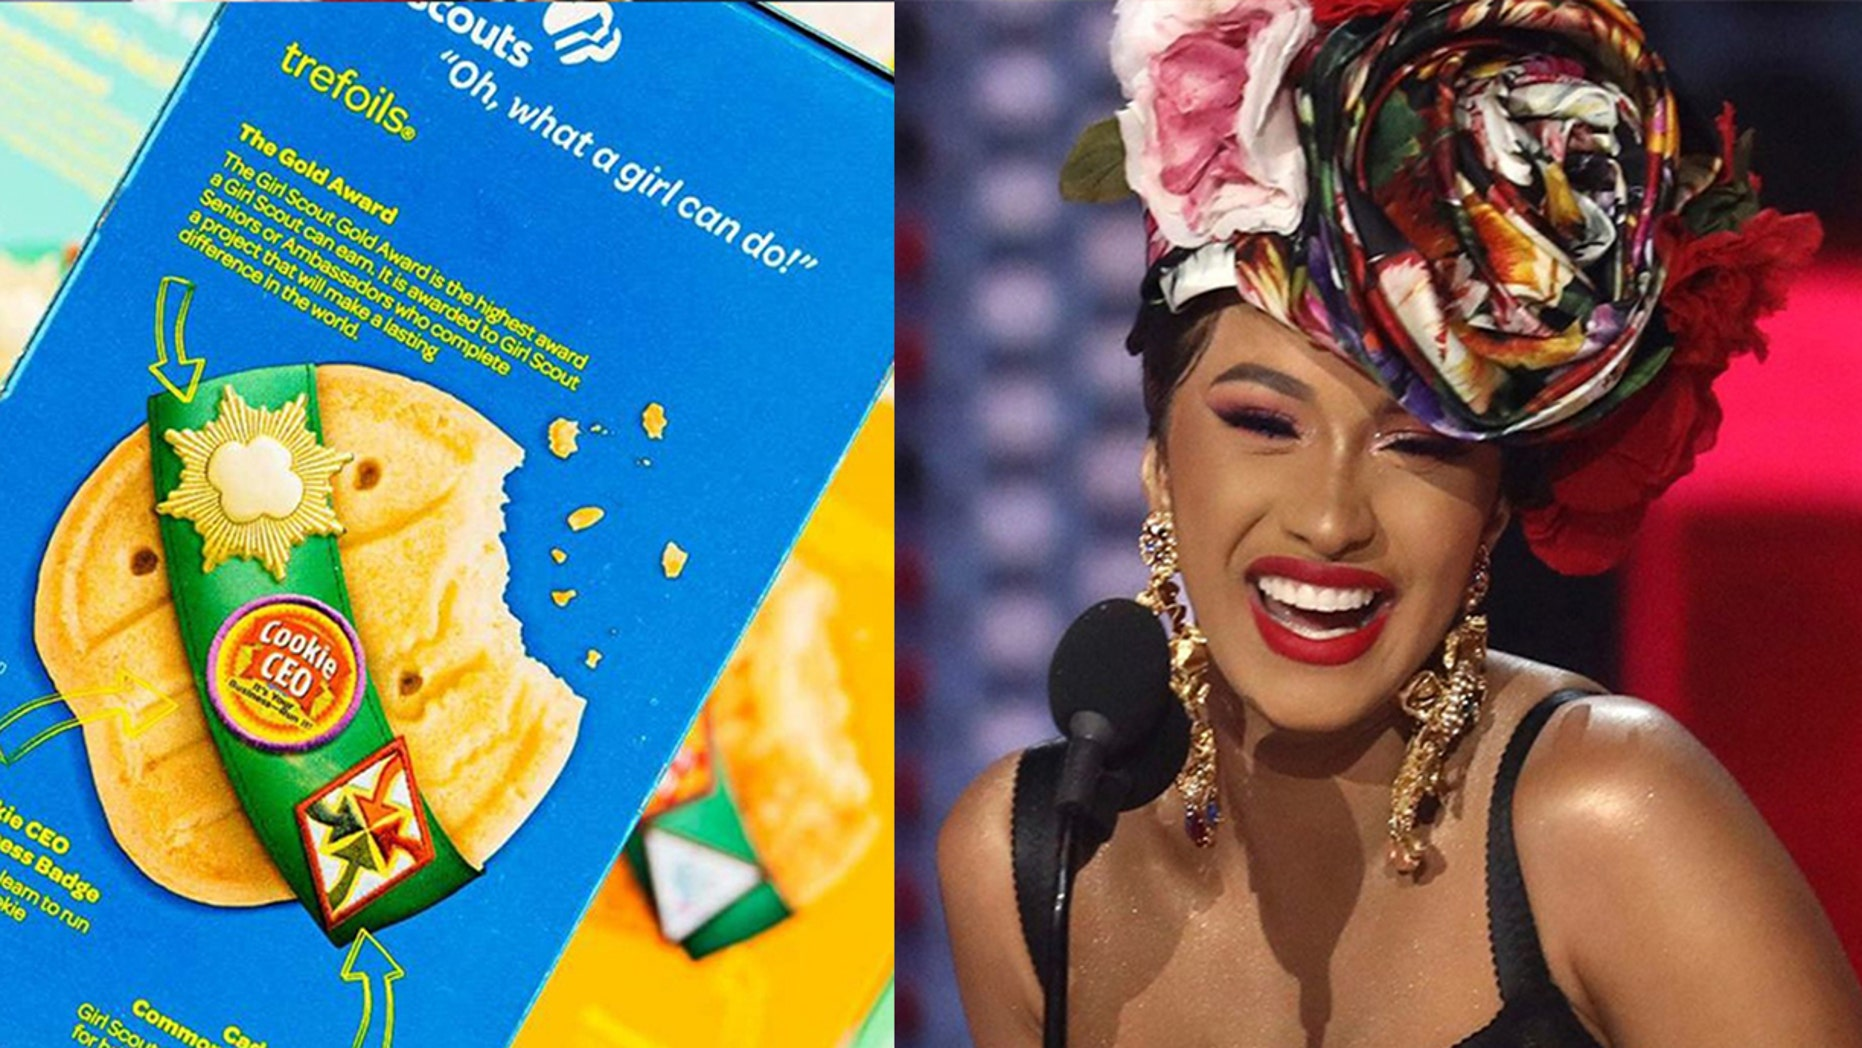 California Woman Scout's Cookie-themed Cardi B Remix Goes